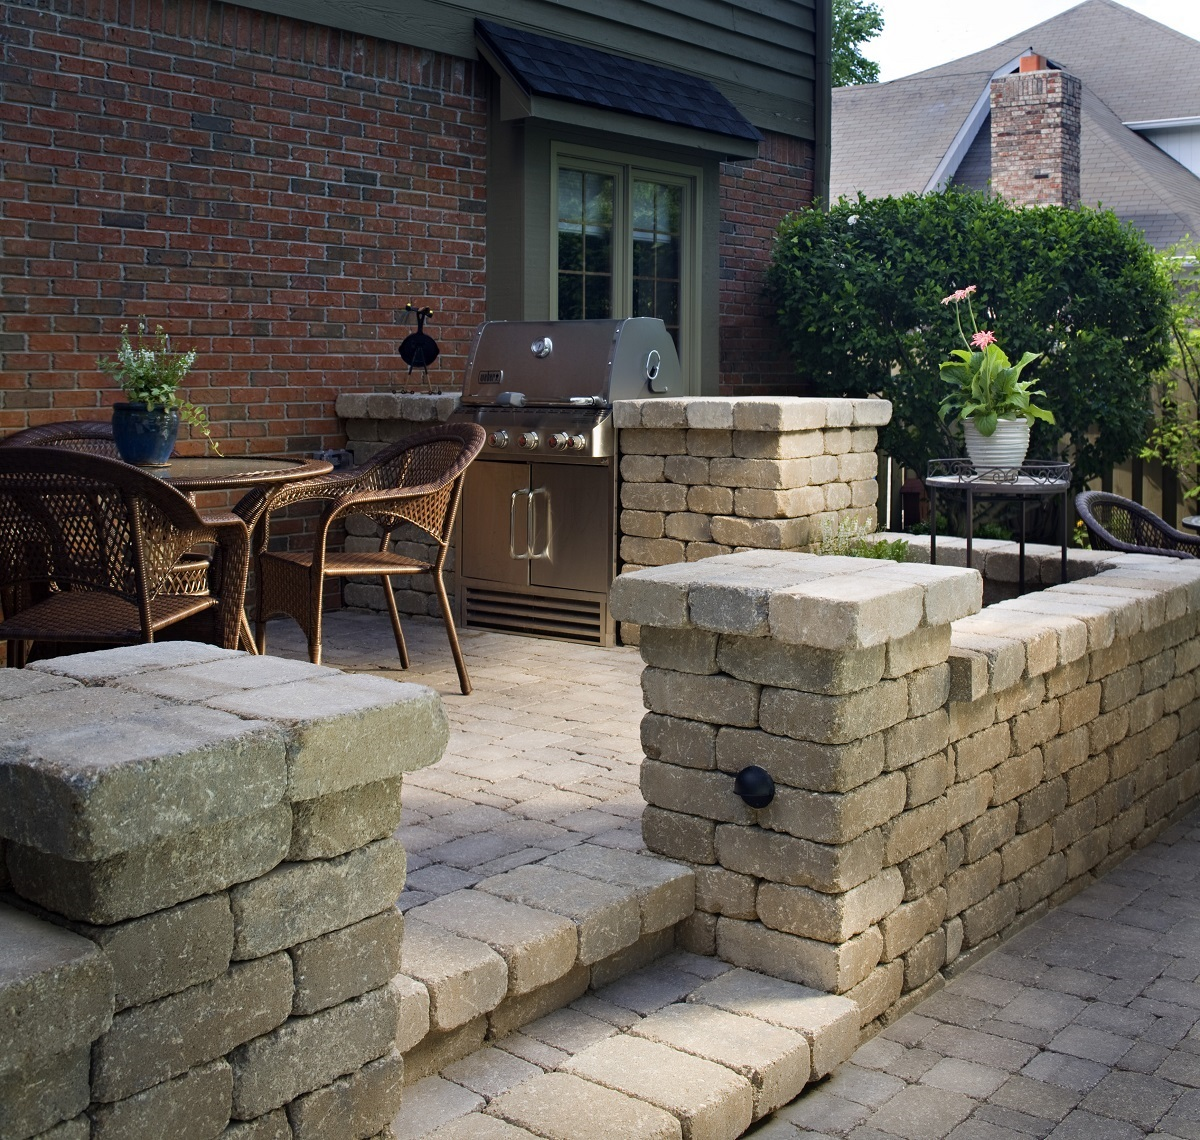 Stunning-paver-patio-with-multi-level-retaining-wall